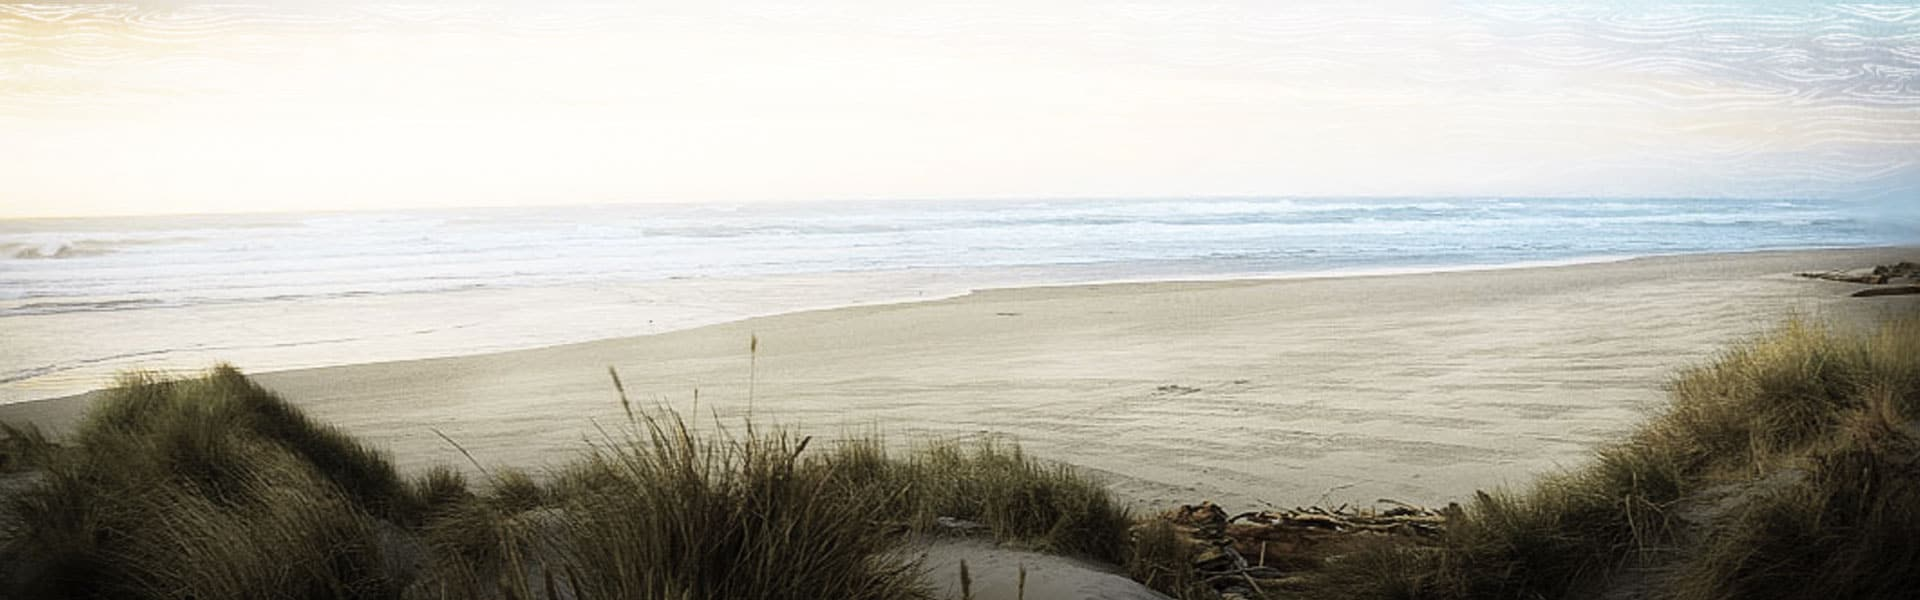 Sandy beach with grass at Coos Bay